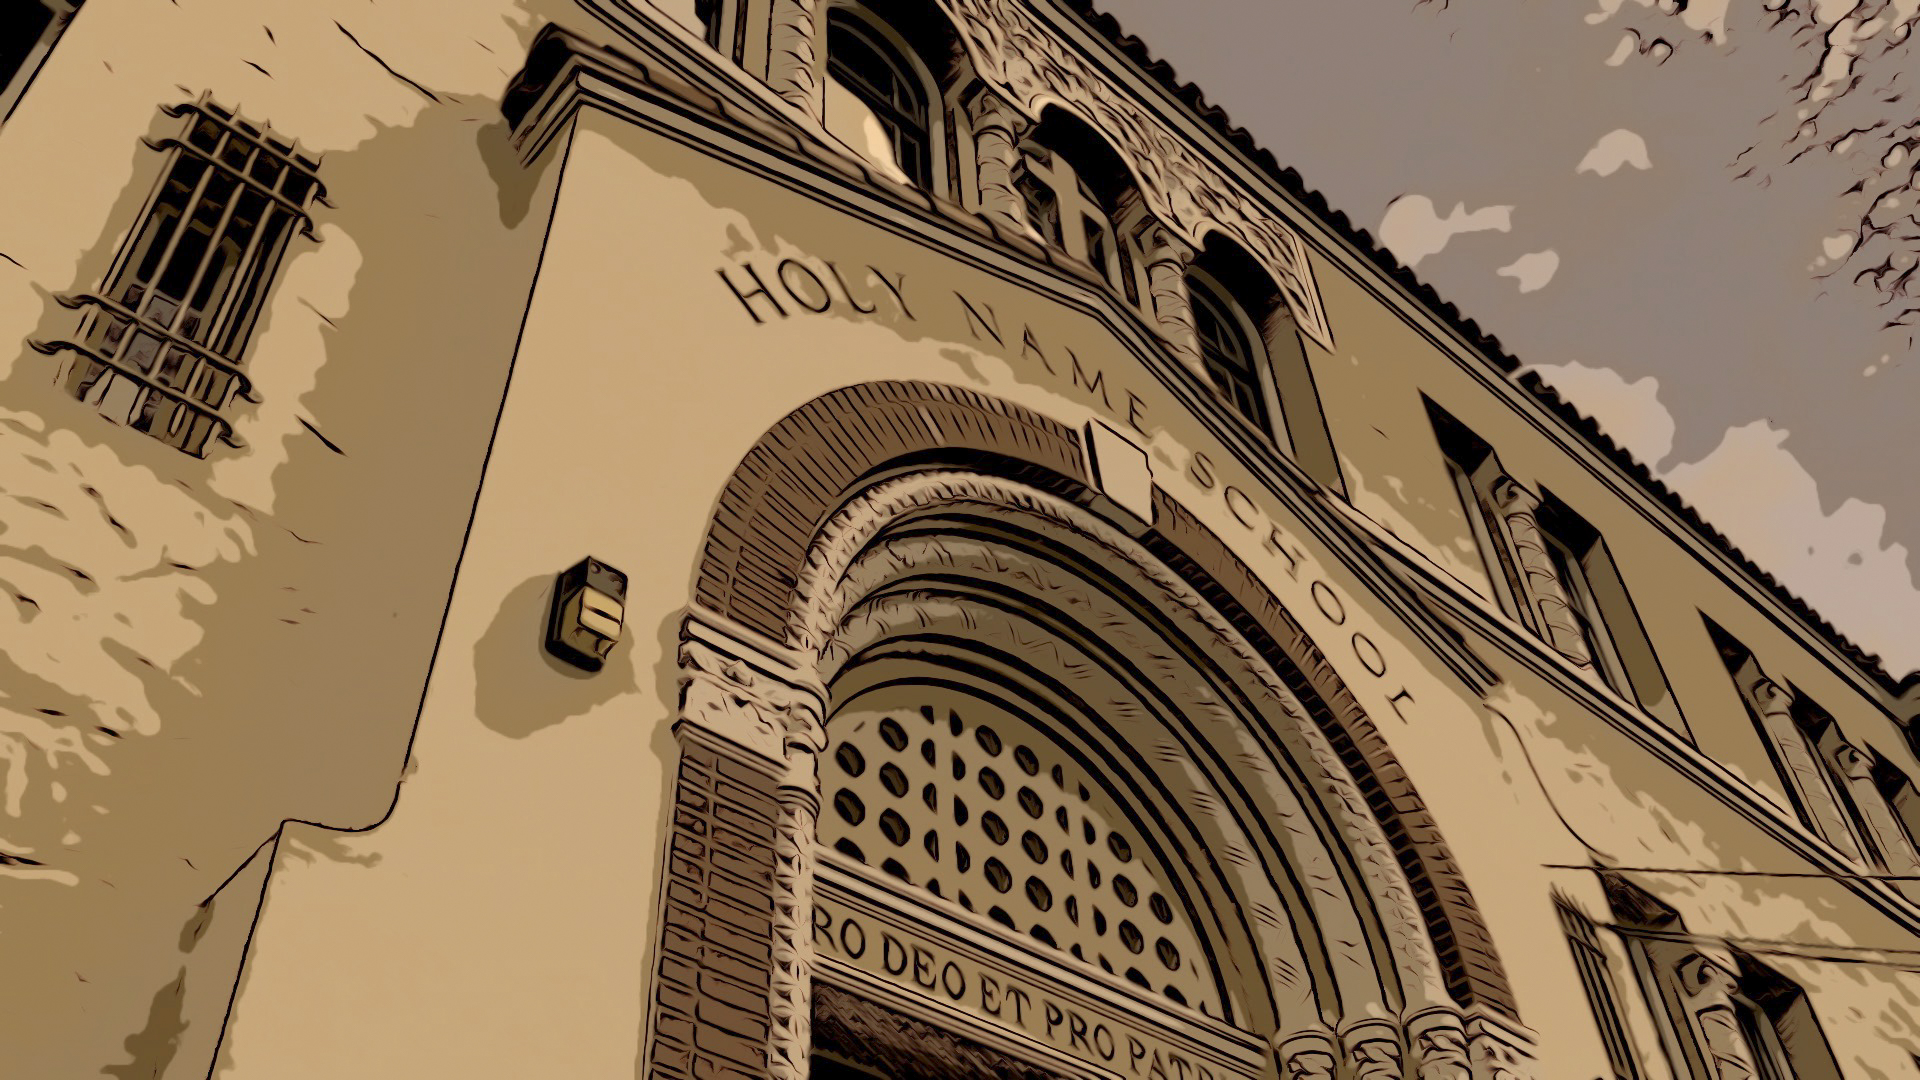 Holy Name-Paula hands in contract - imag